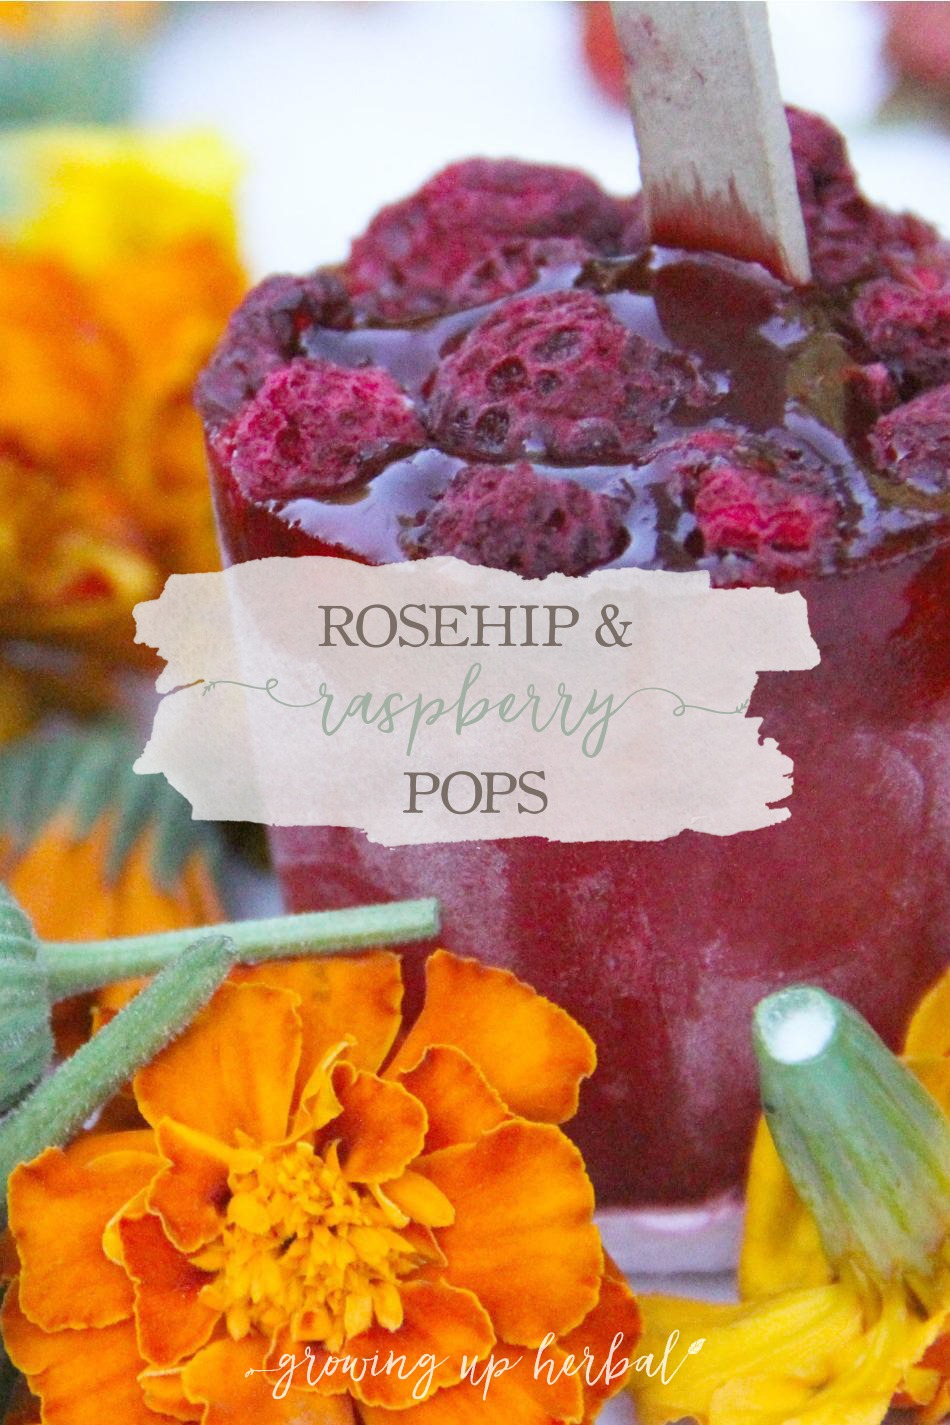 Rose Hip and Raspberry Popsicles | Growing Up Herbal | Yum! These herbal popsicles are easy to make and will hit the spot on a hot summer day!